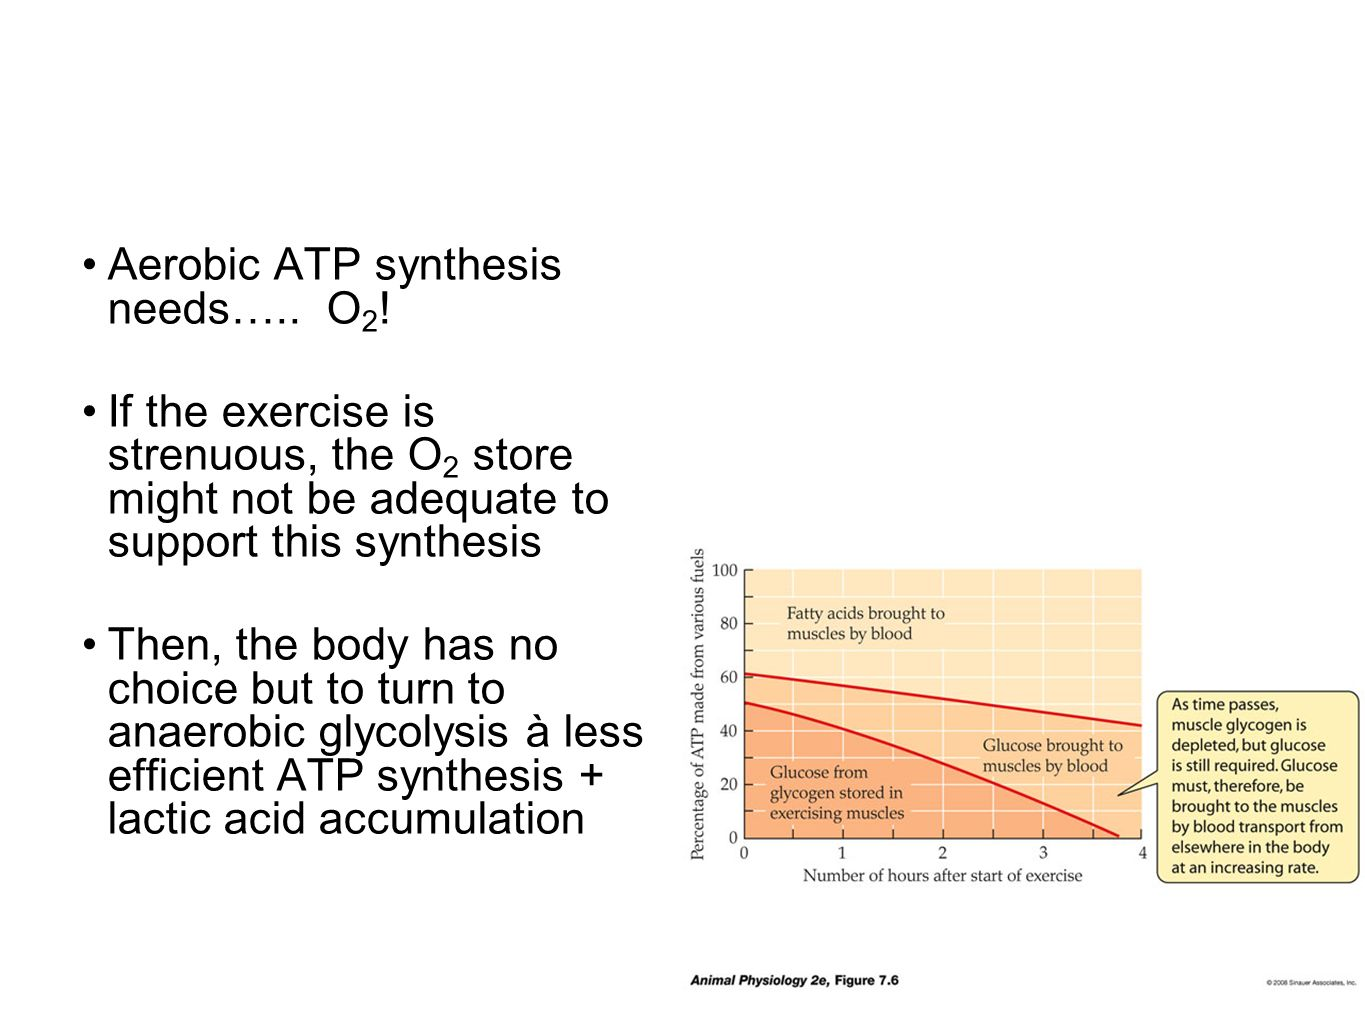 Aerobic ATP synthesis needs….. O2!